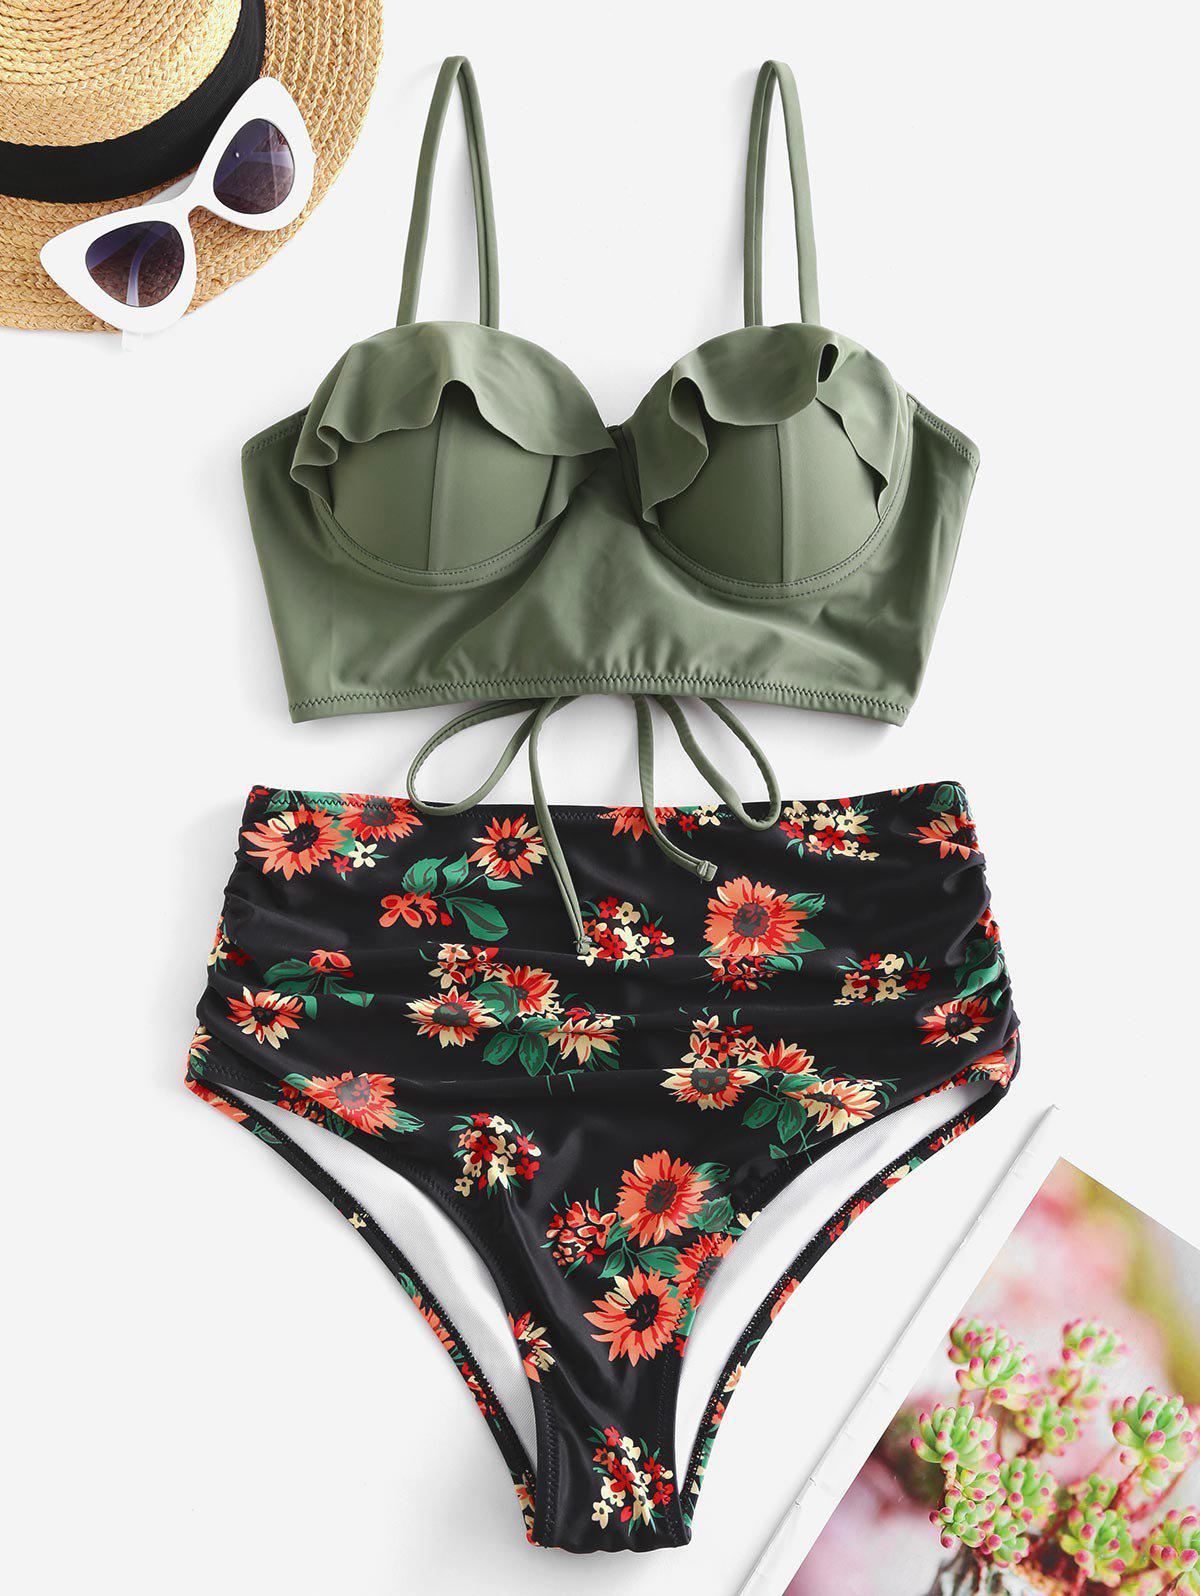 Affordable Floral Ruffles Push Up Lace-up Ruched Bikini Swimsuit